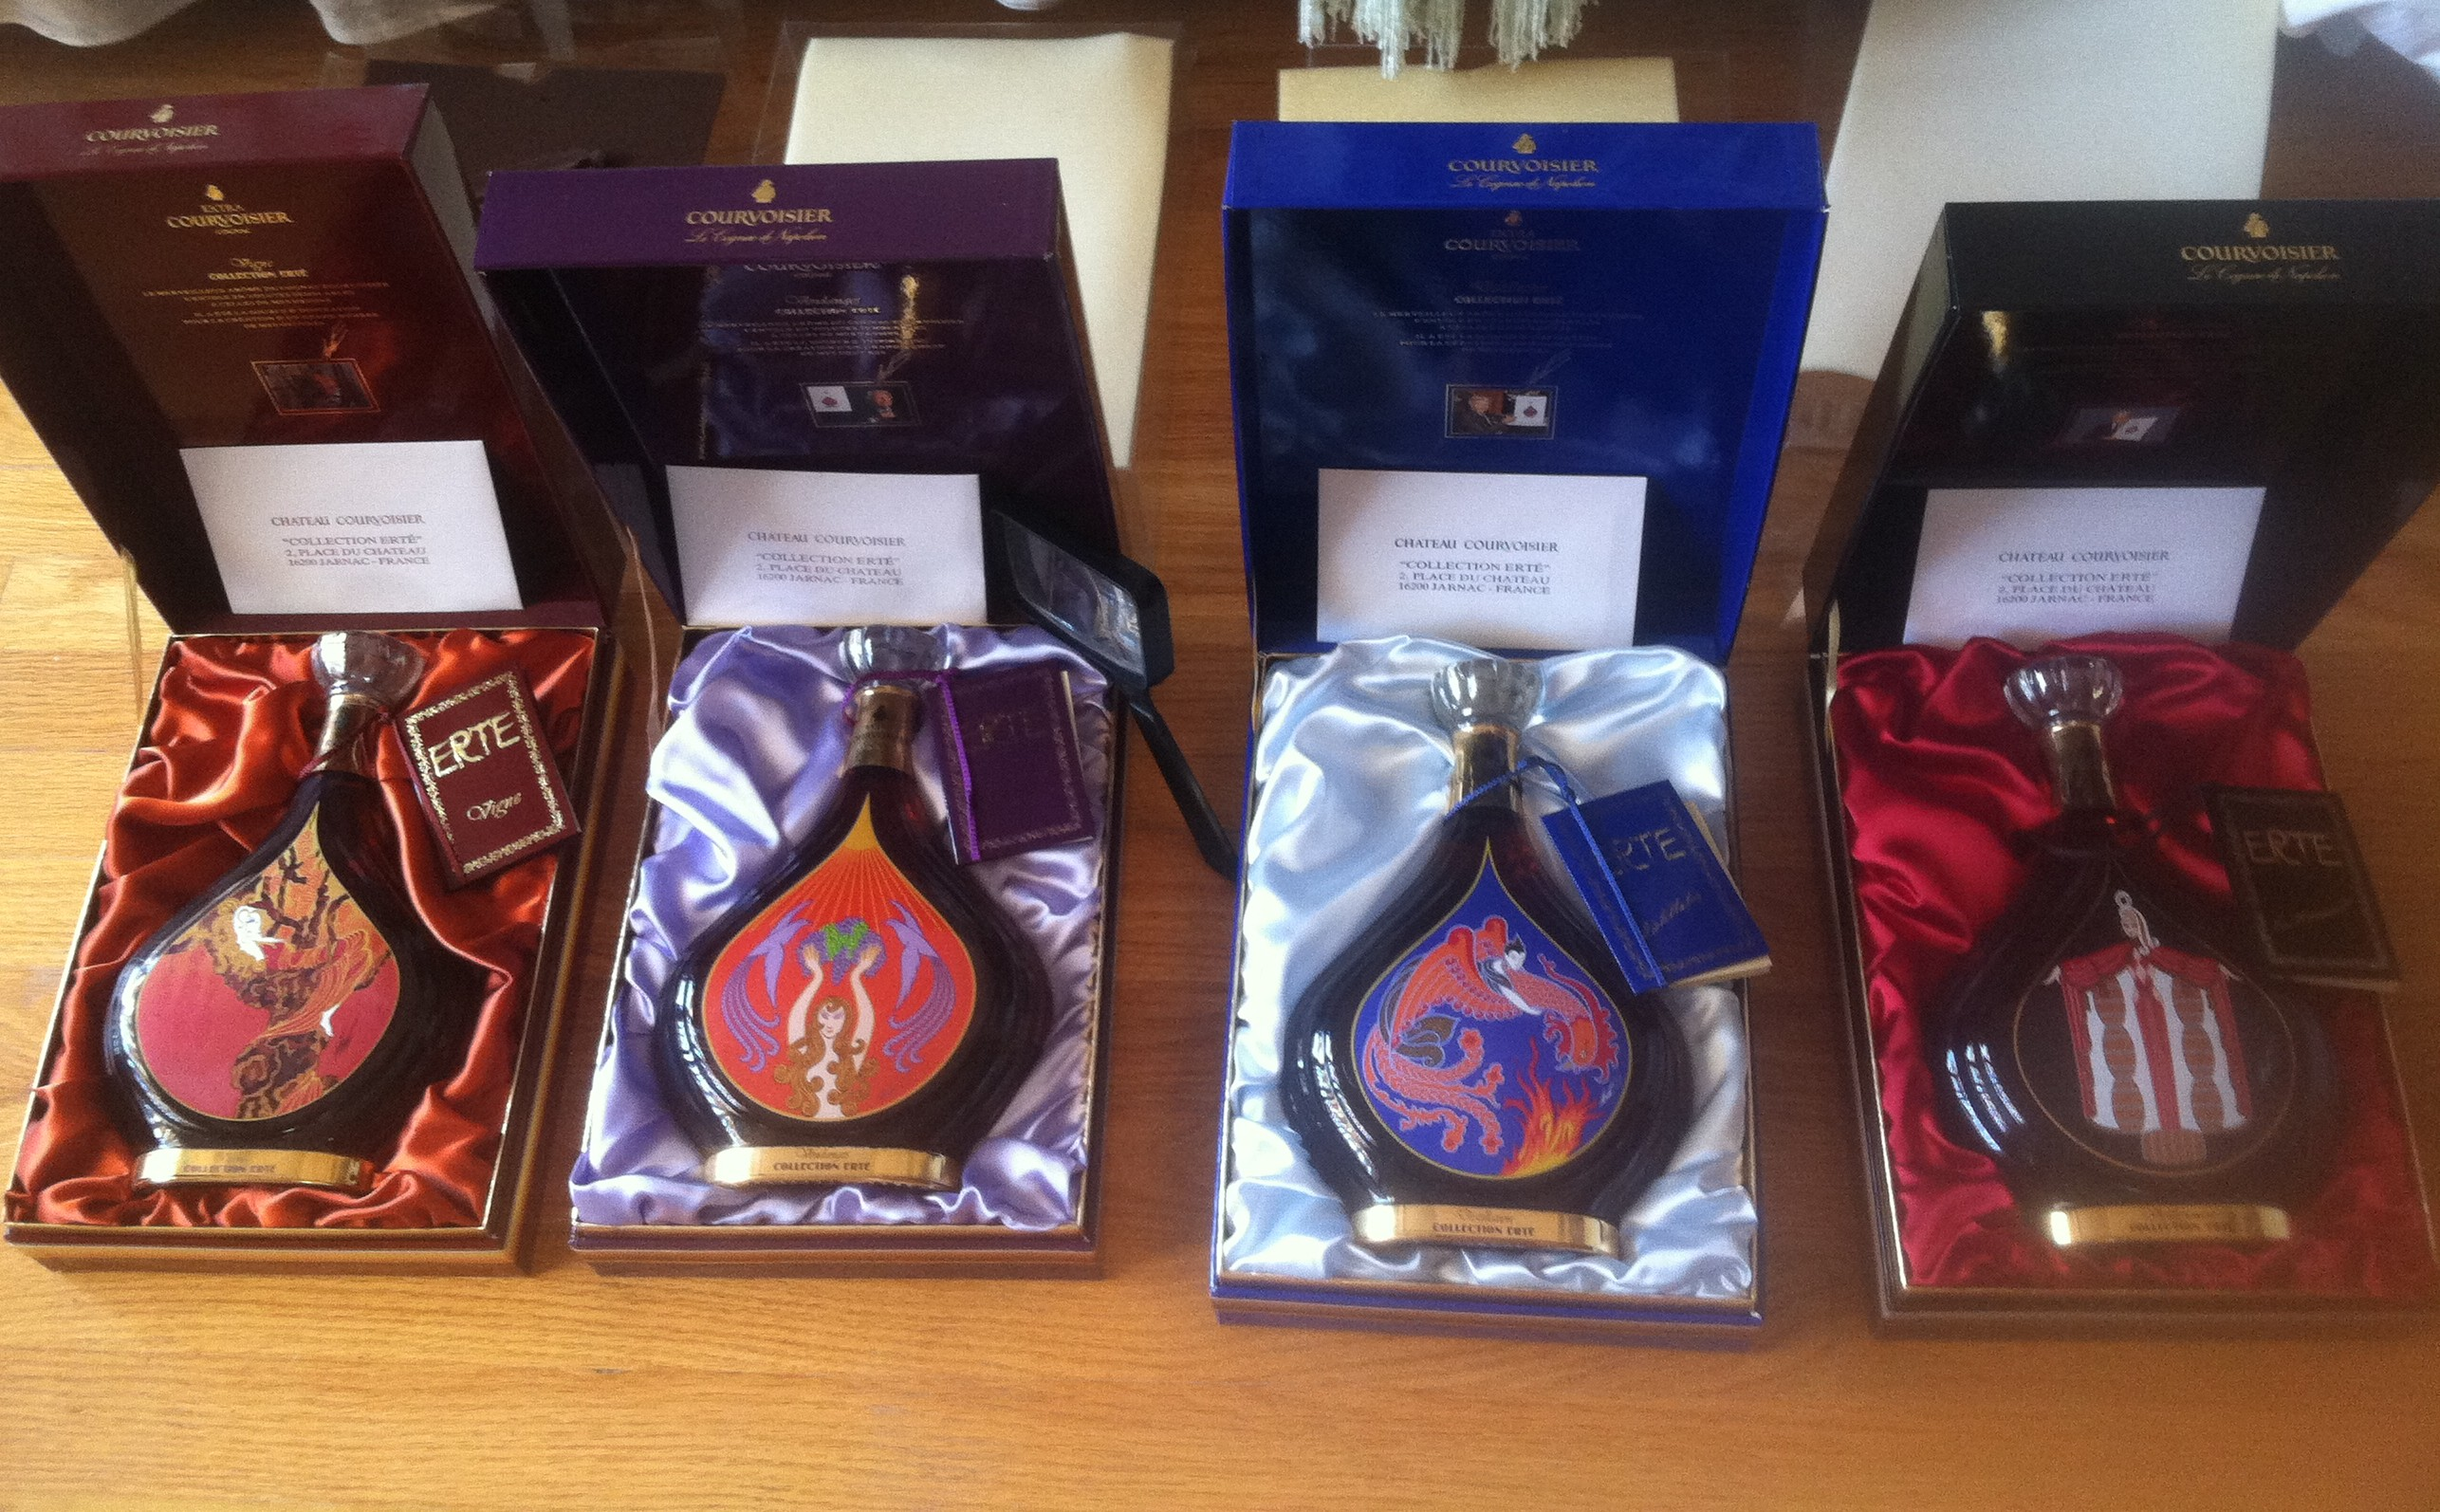 Complete Erte Courvoisier Cognac Collection